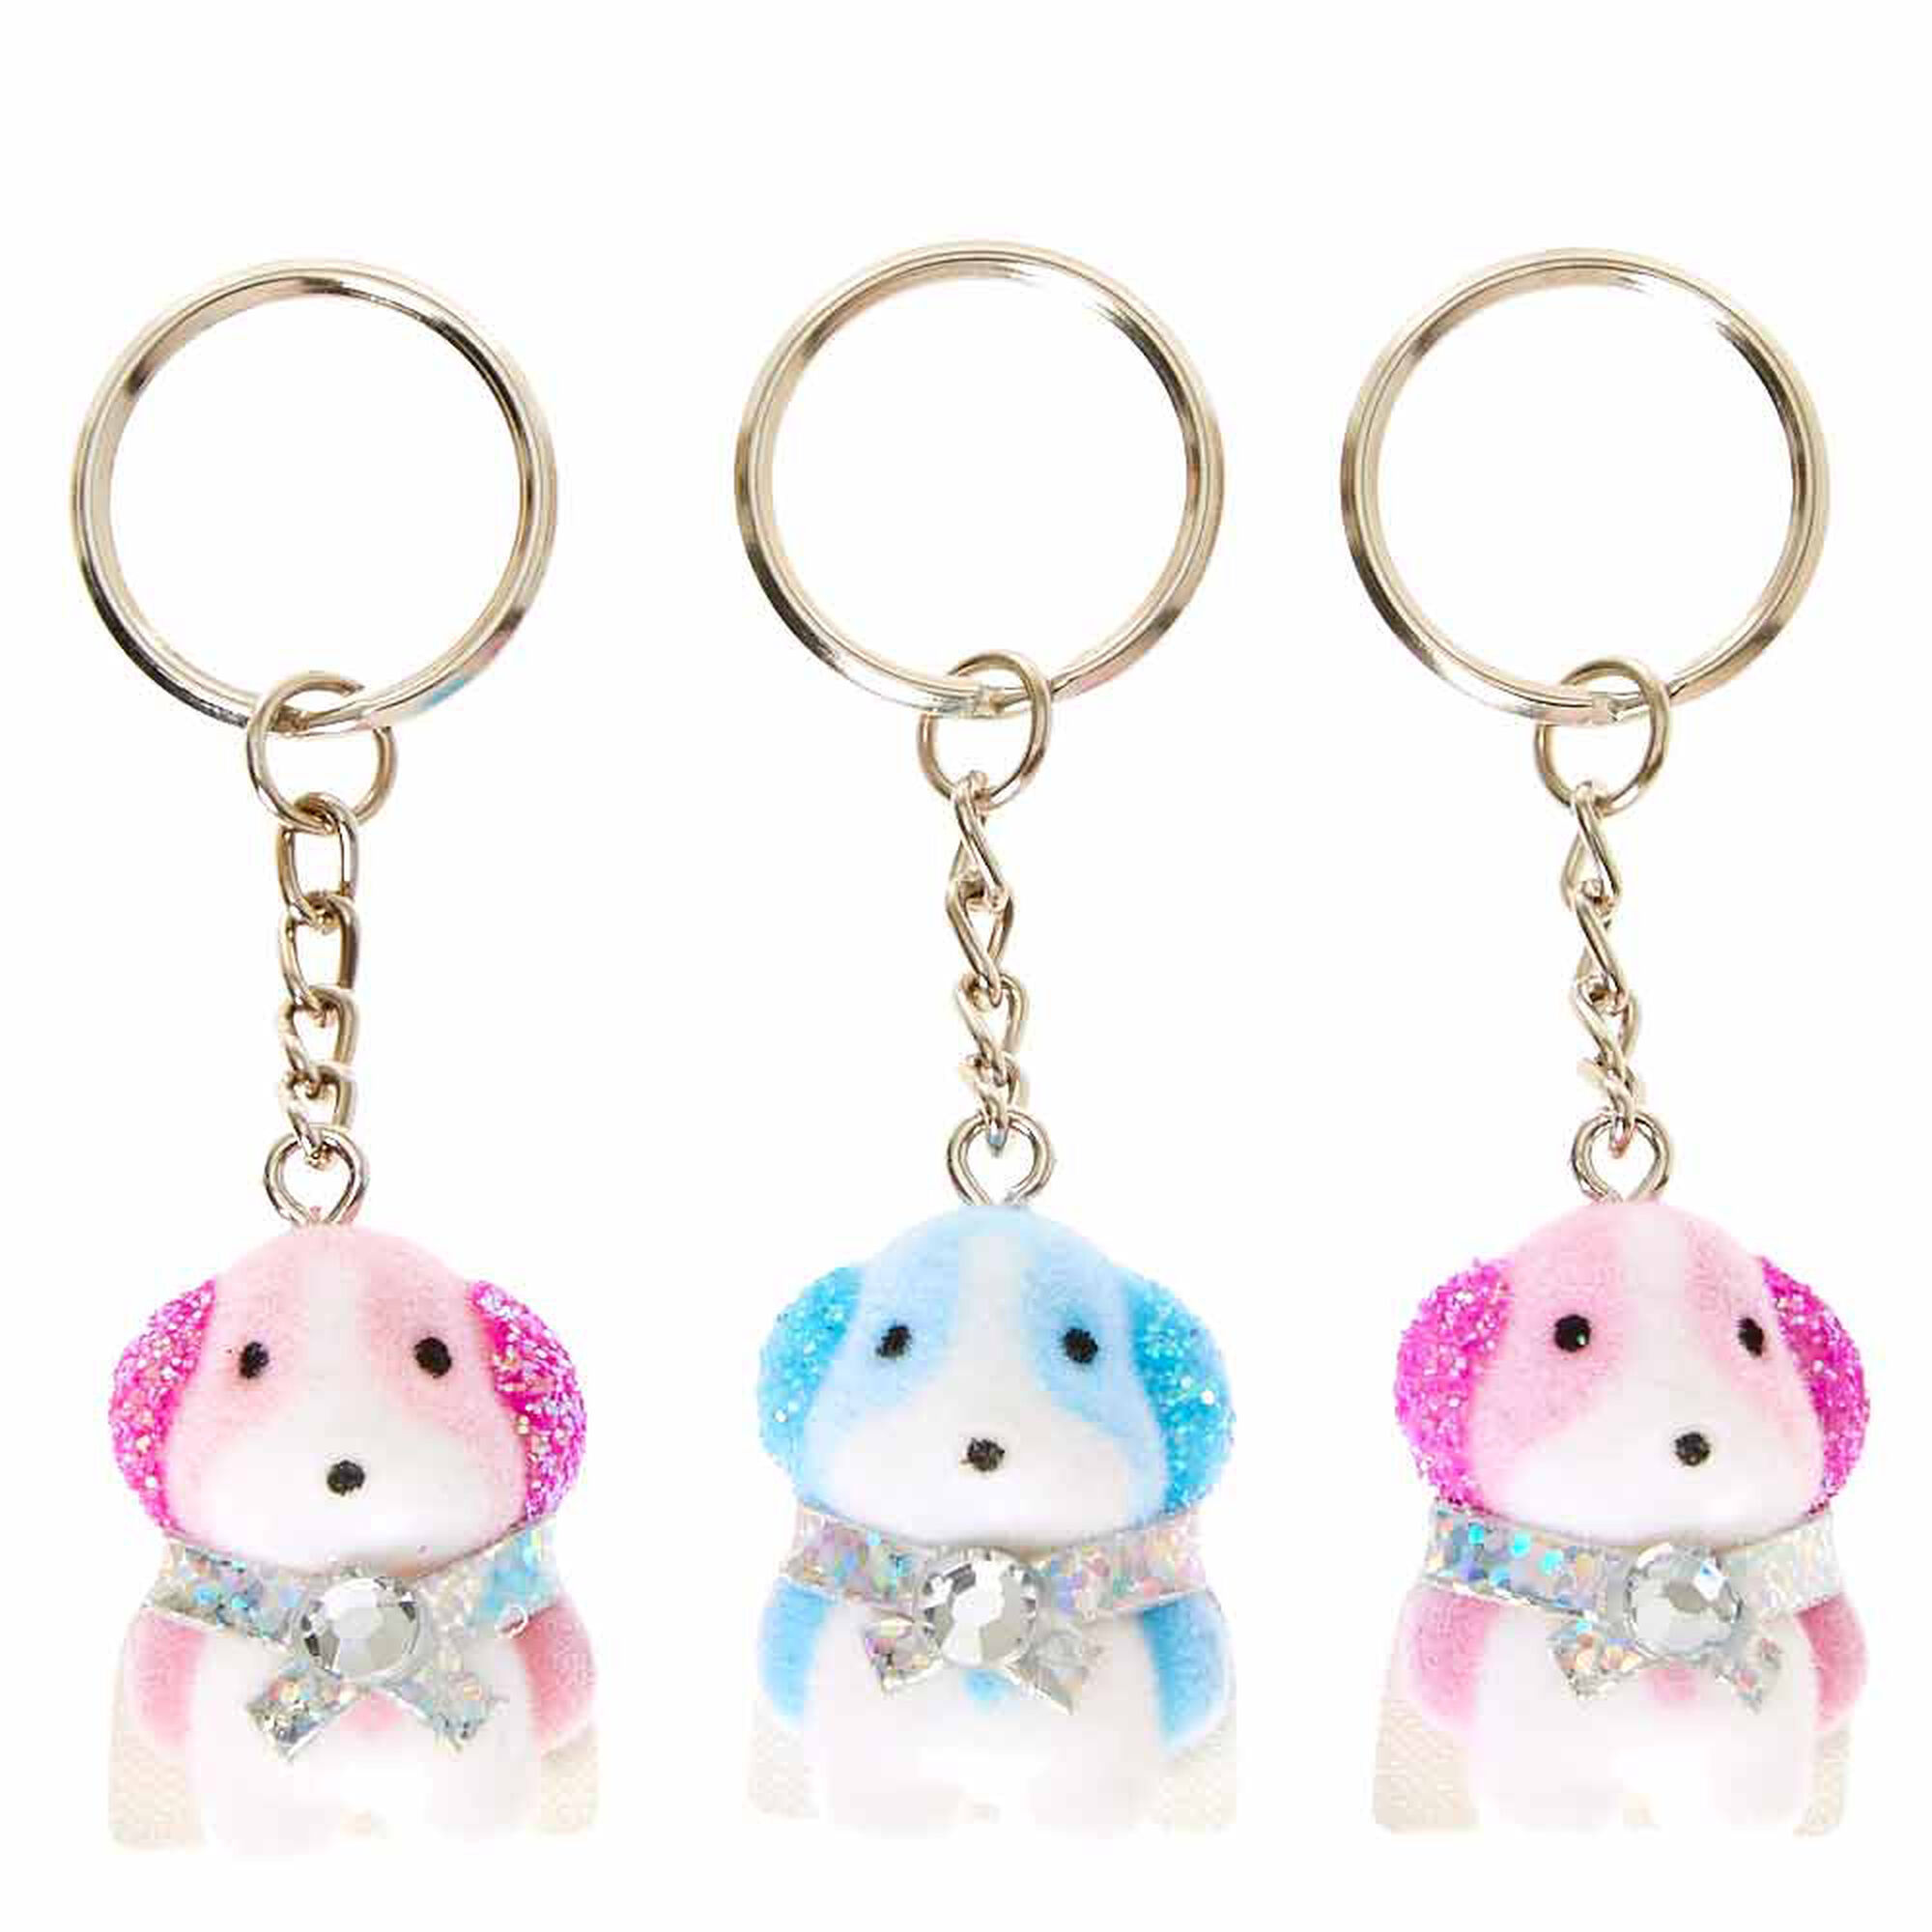 fullxfull friend pineapple accessories key gifts p friends rings fruit best keychains il keychain cherry chain